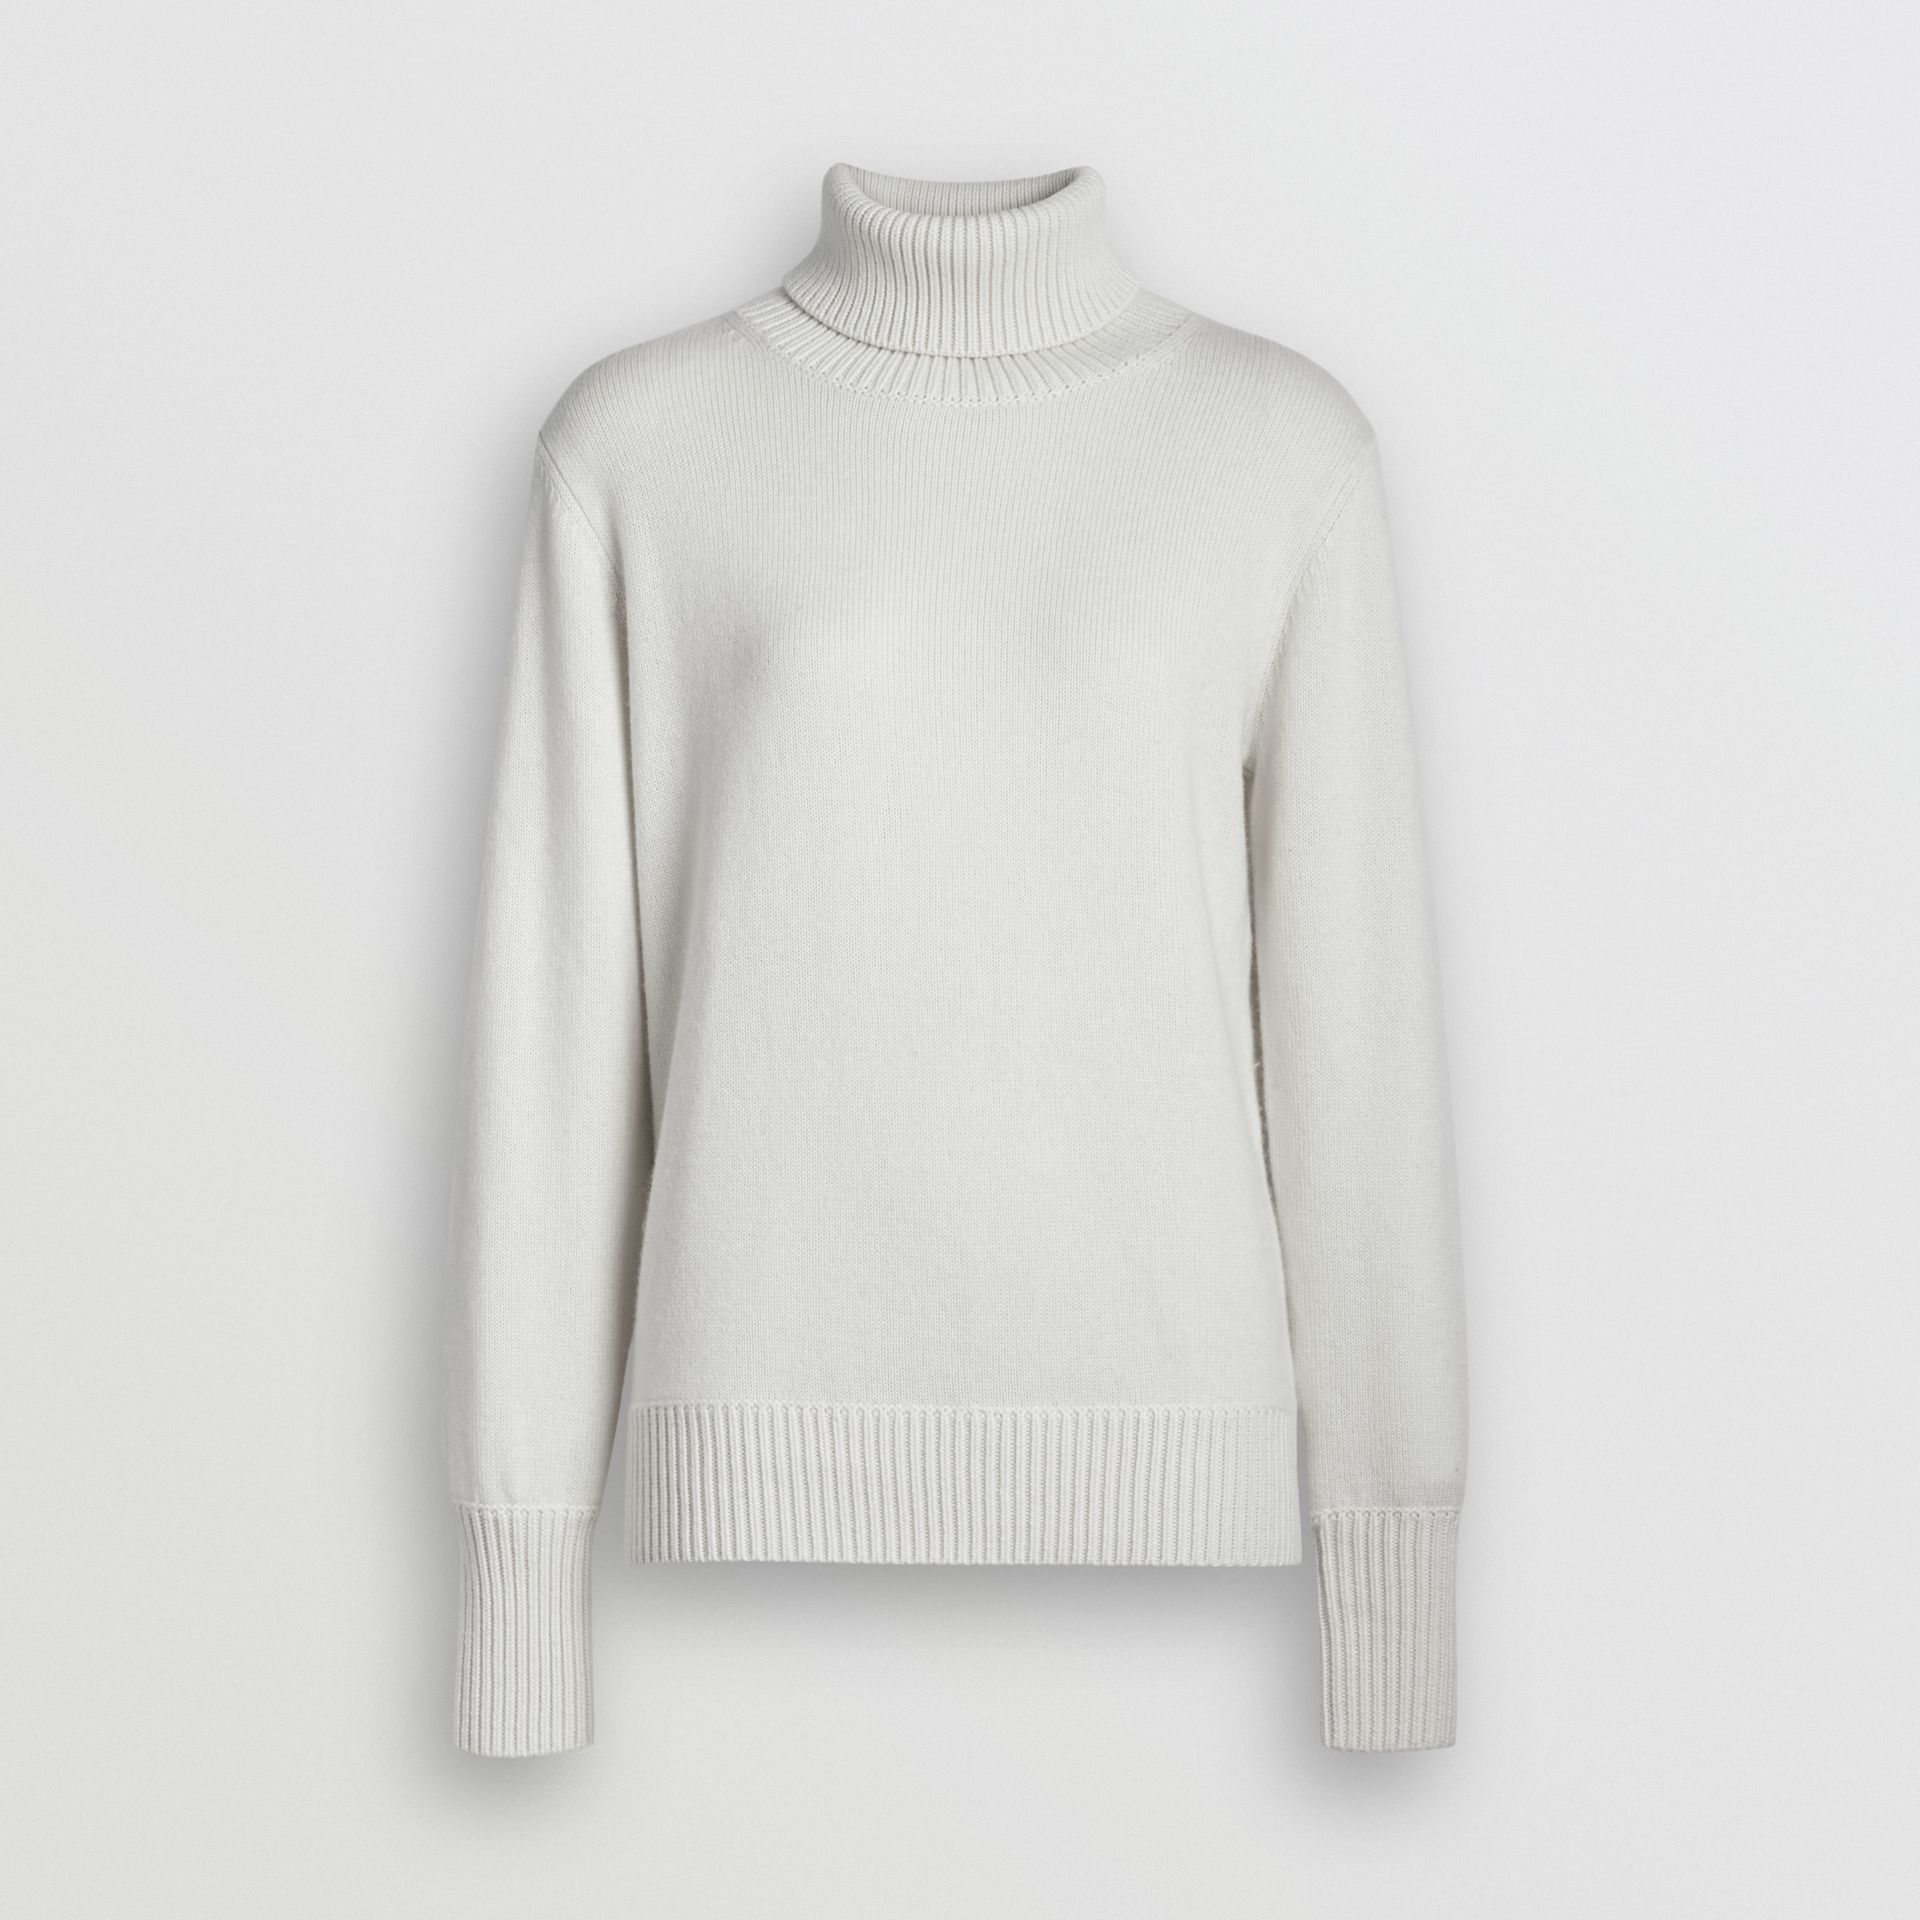 Embroidered Crest Cashmere Roll-neck Sweater in White - Women | Burberry United States - gallery image 3